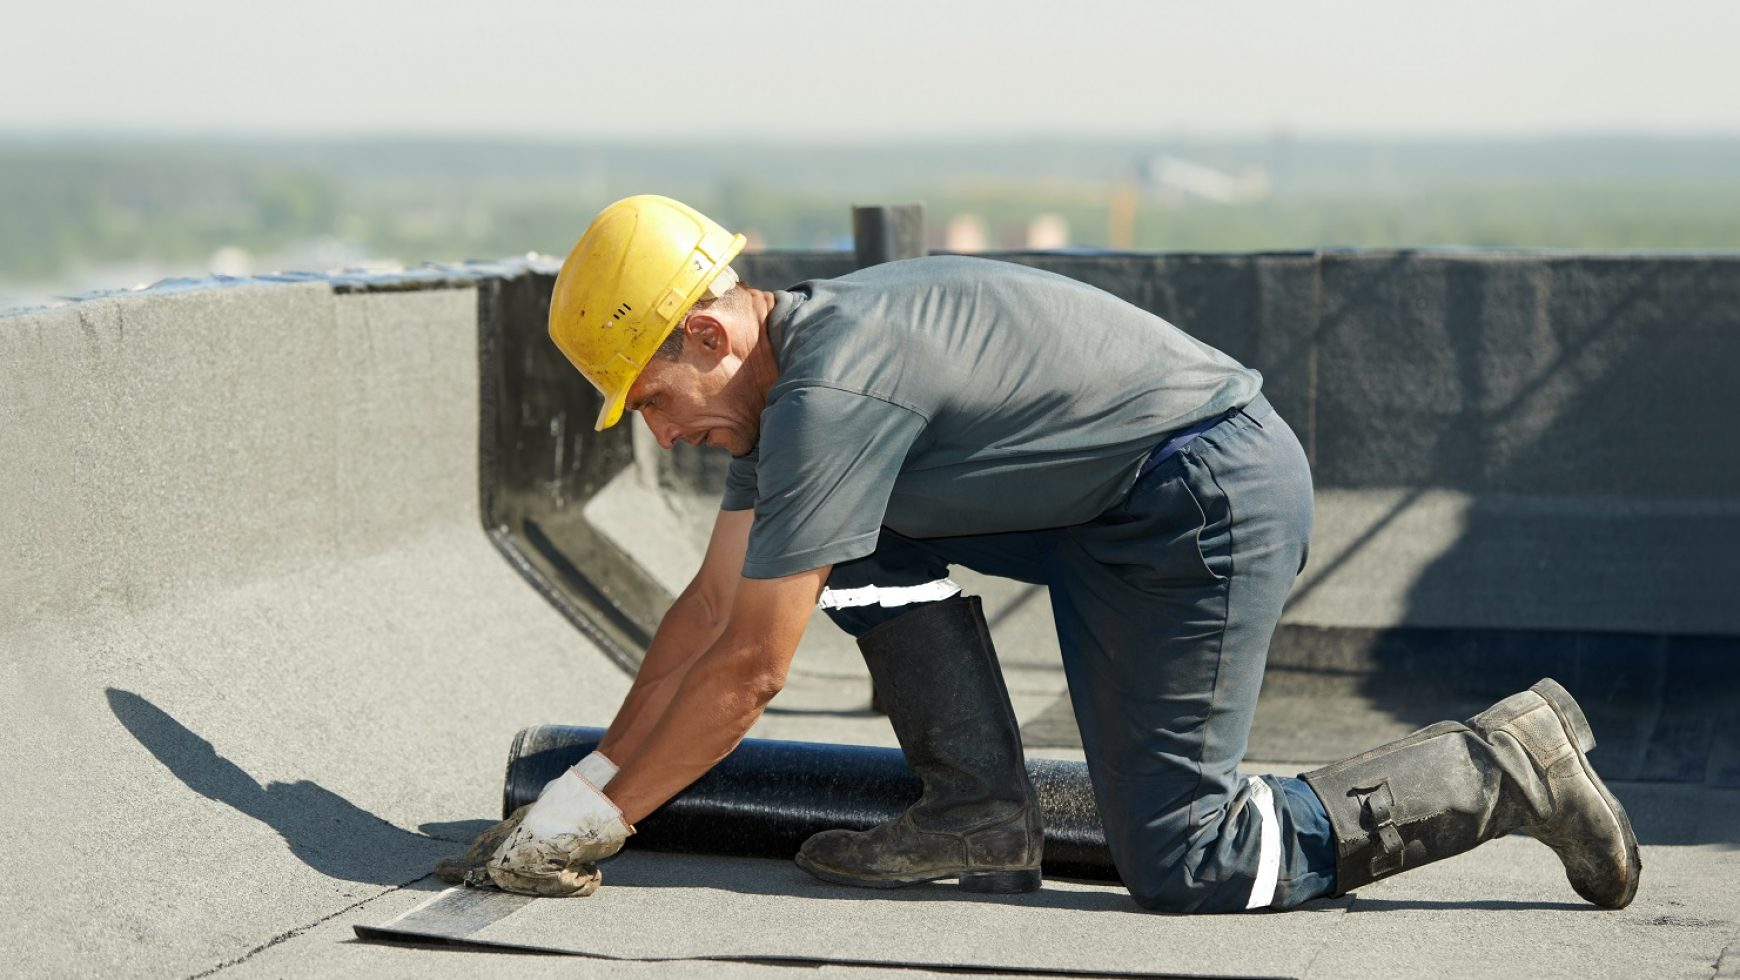 Flat-Roof-Repair-Lake-Oswego-OR-1740x980.jpeg (1740×980)